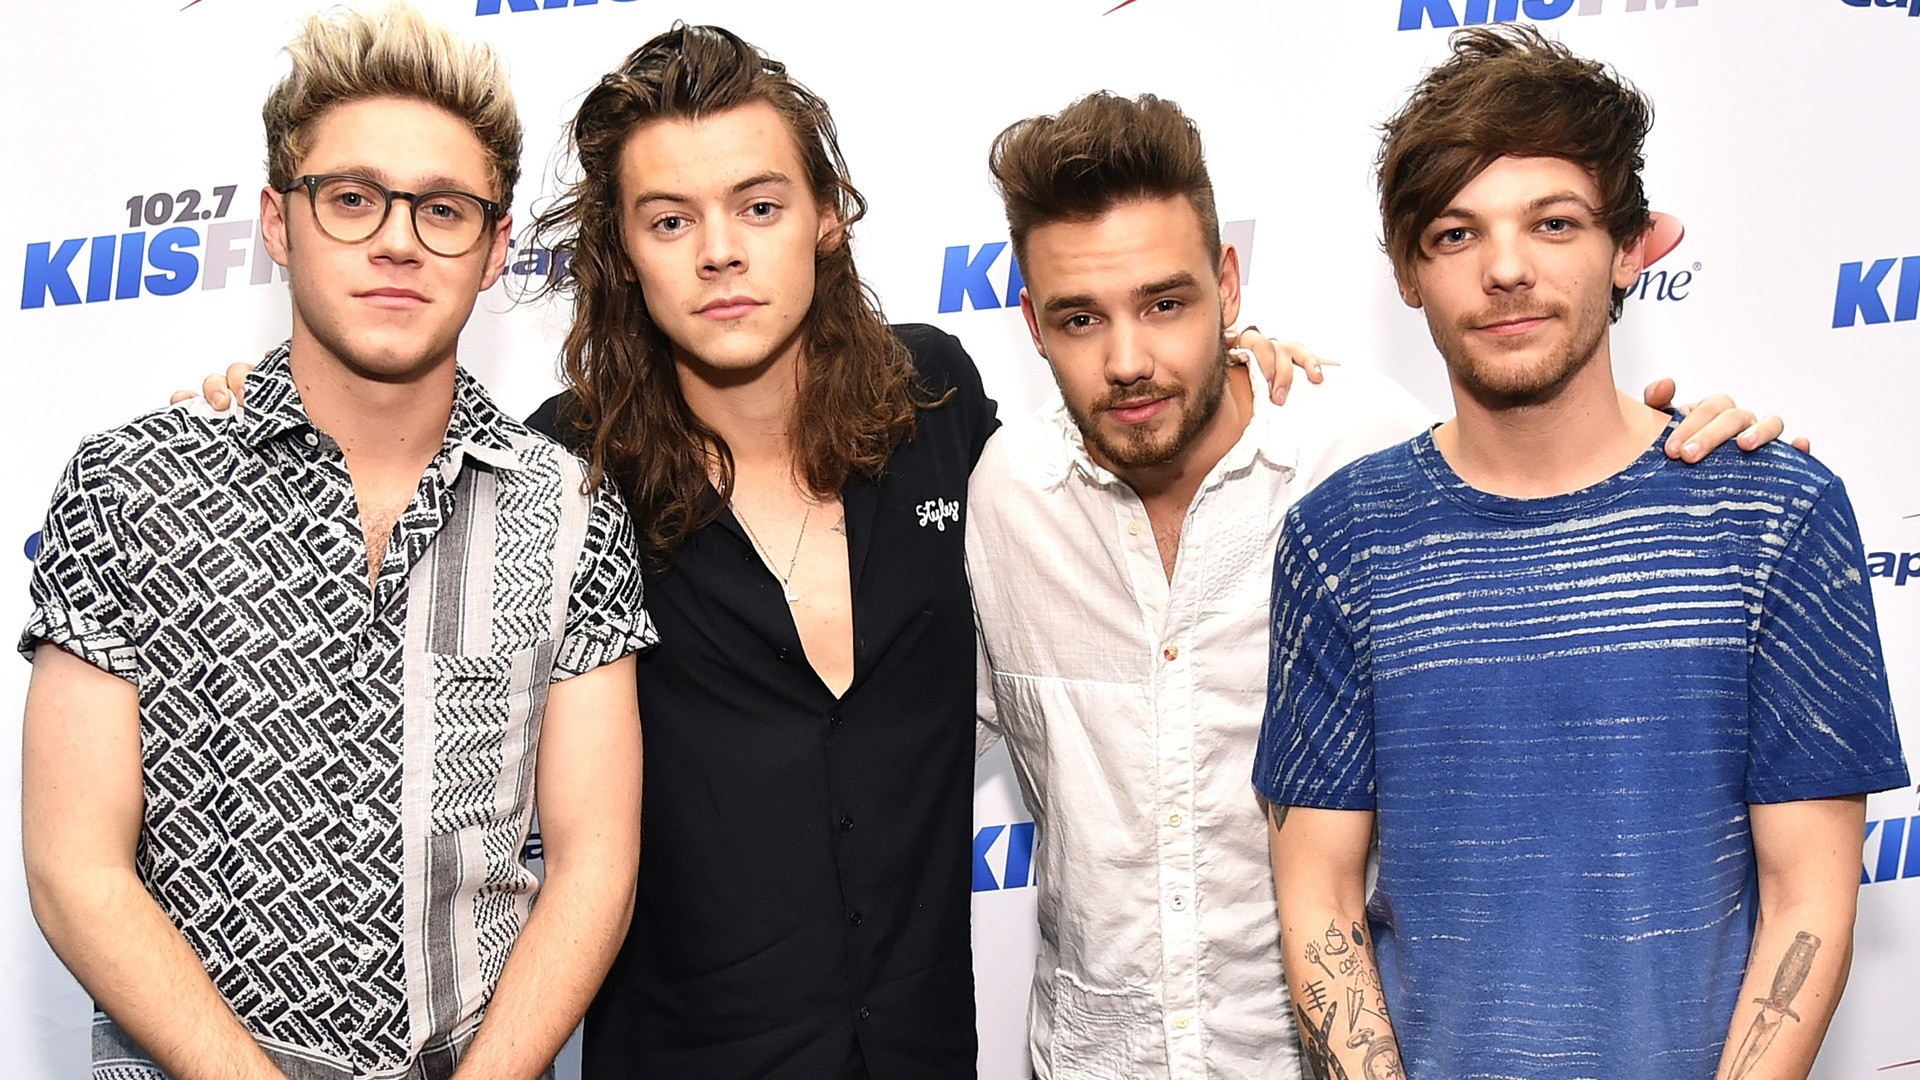 One Direction Wallpaper Download Free Hd Wallpapers Of